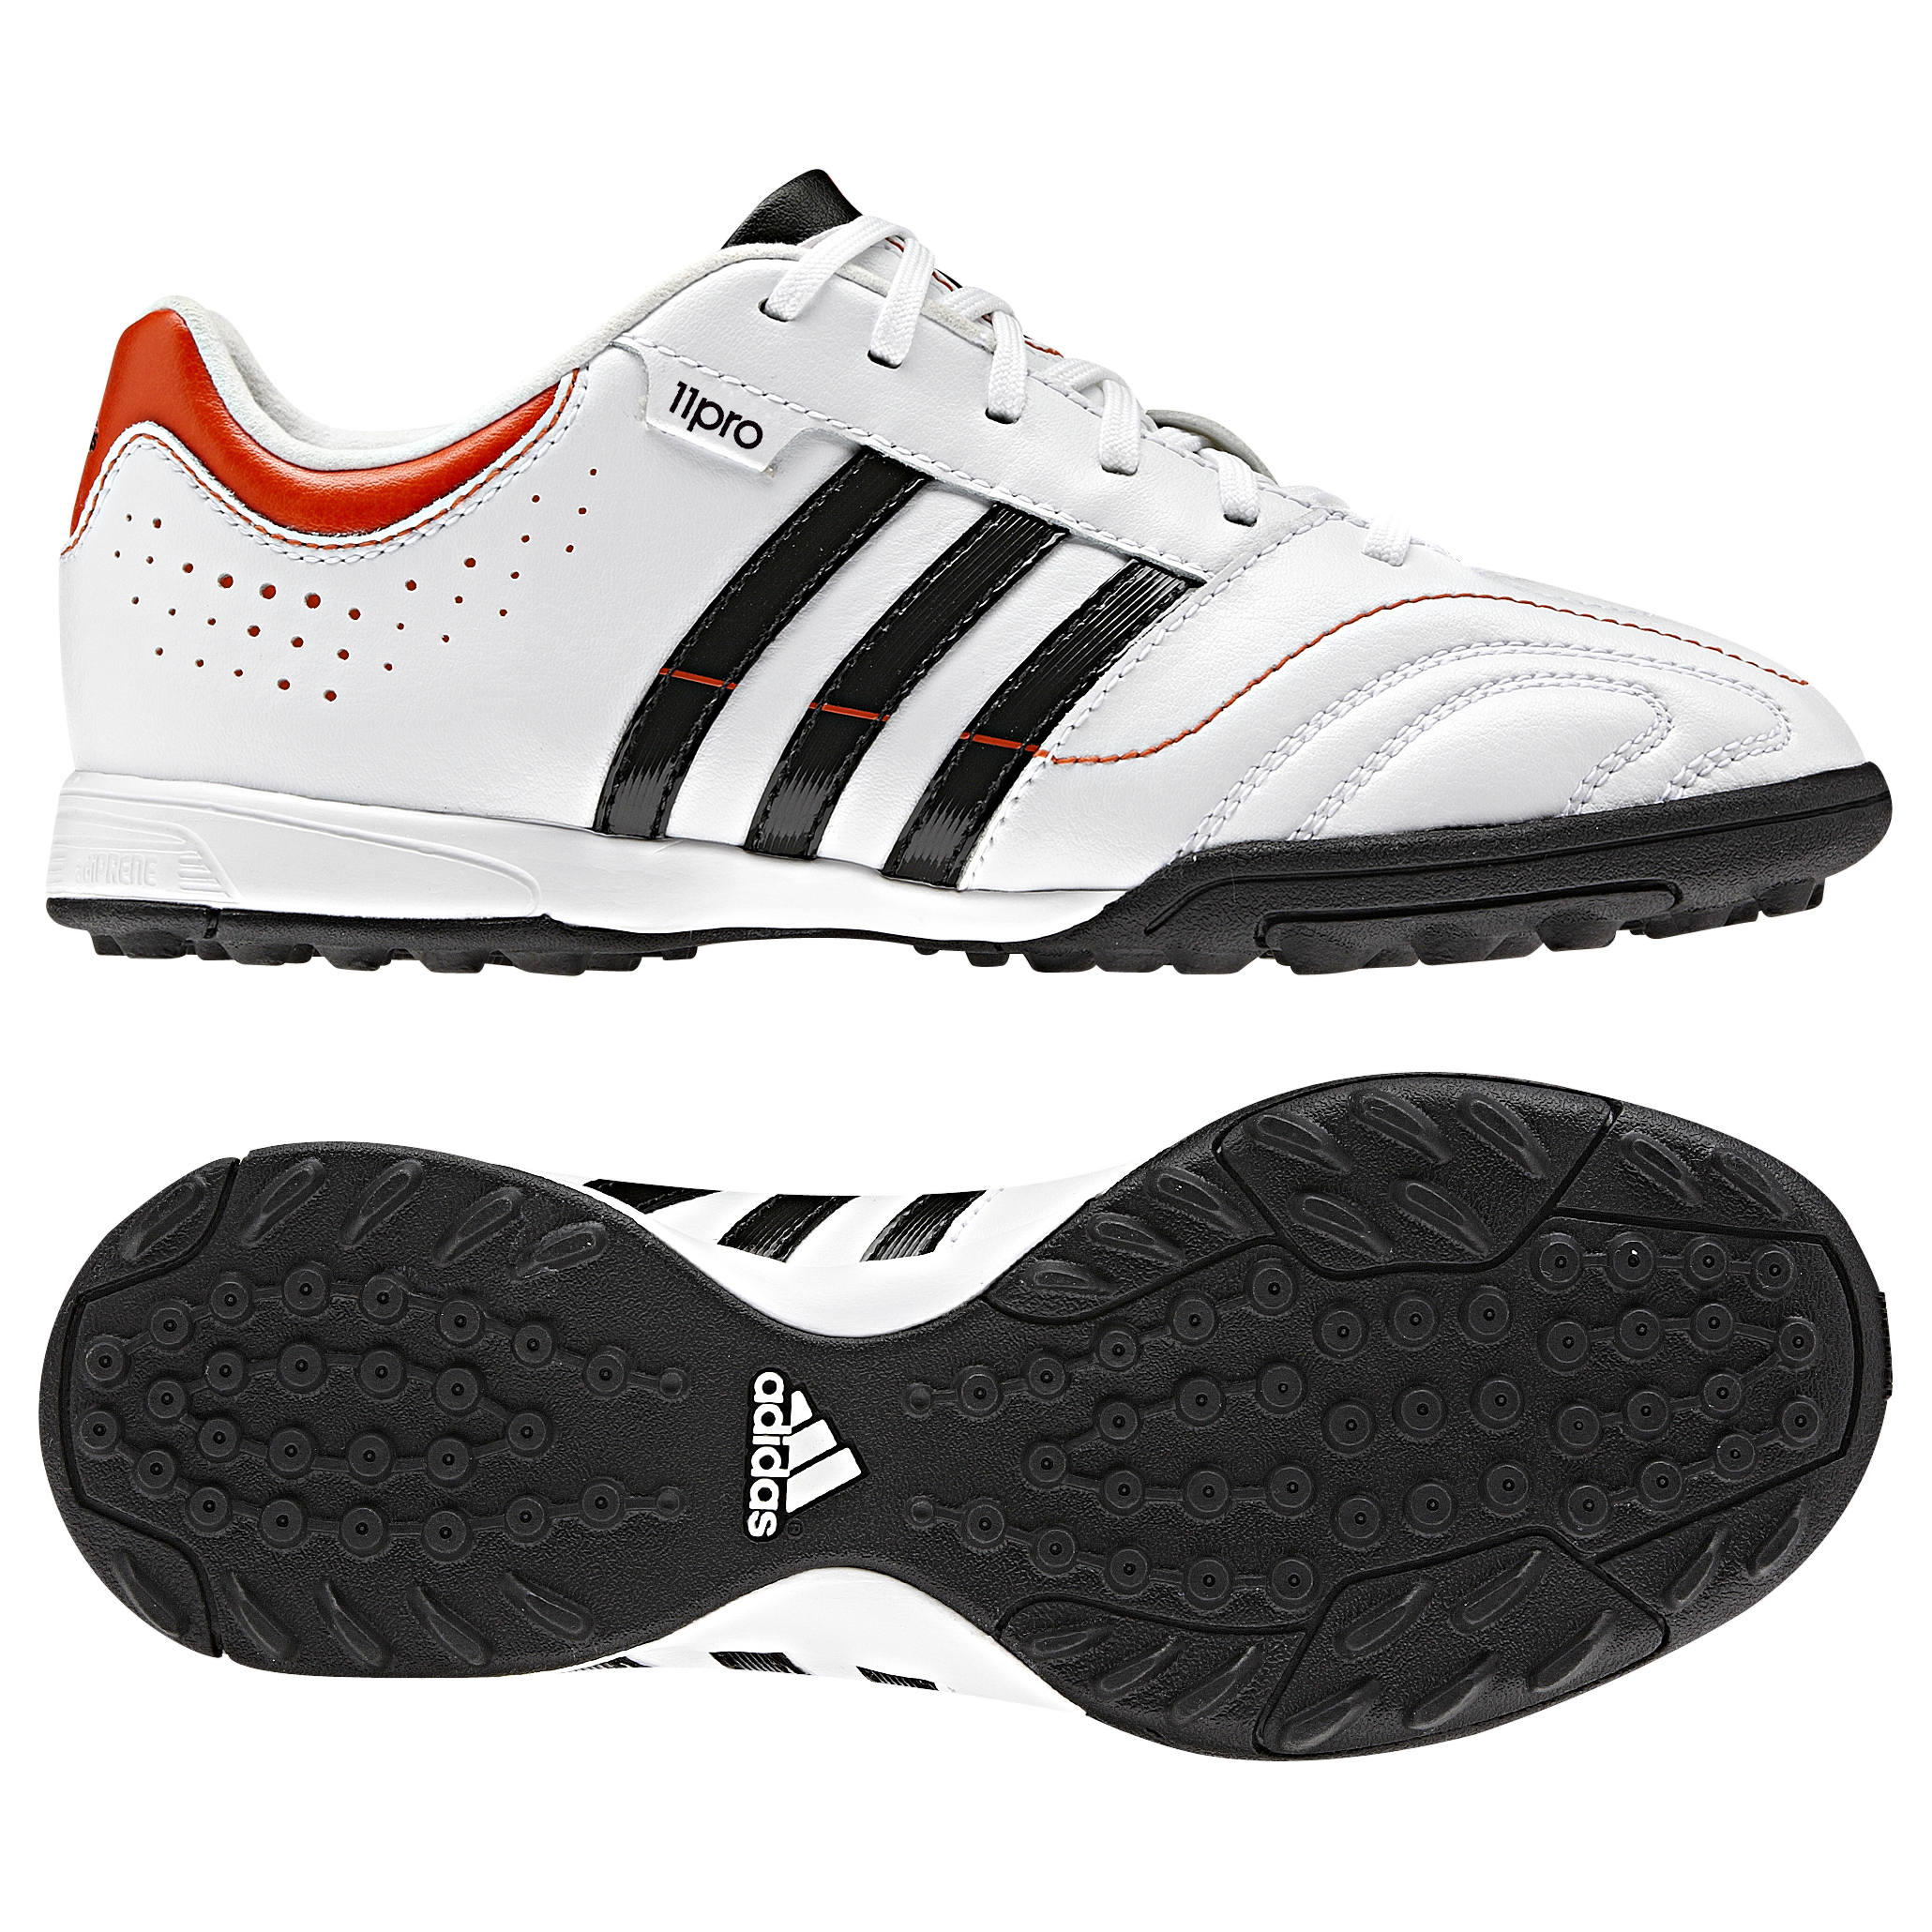 adidas 11Nova TRX Astro Turf Trainers - Kids - Running White/Black 1/High Energy S12